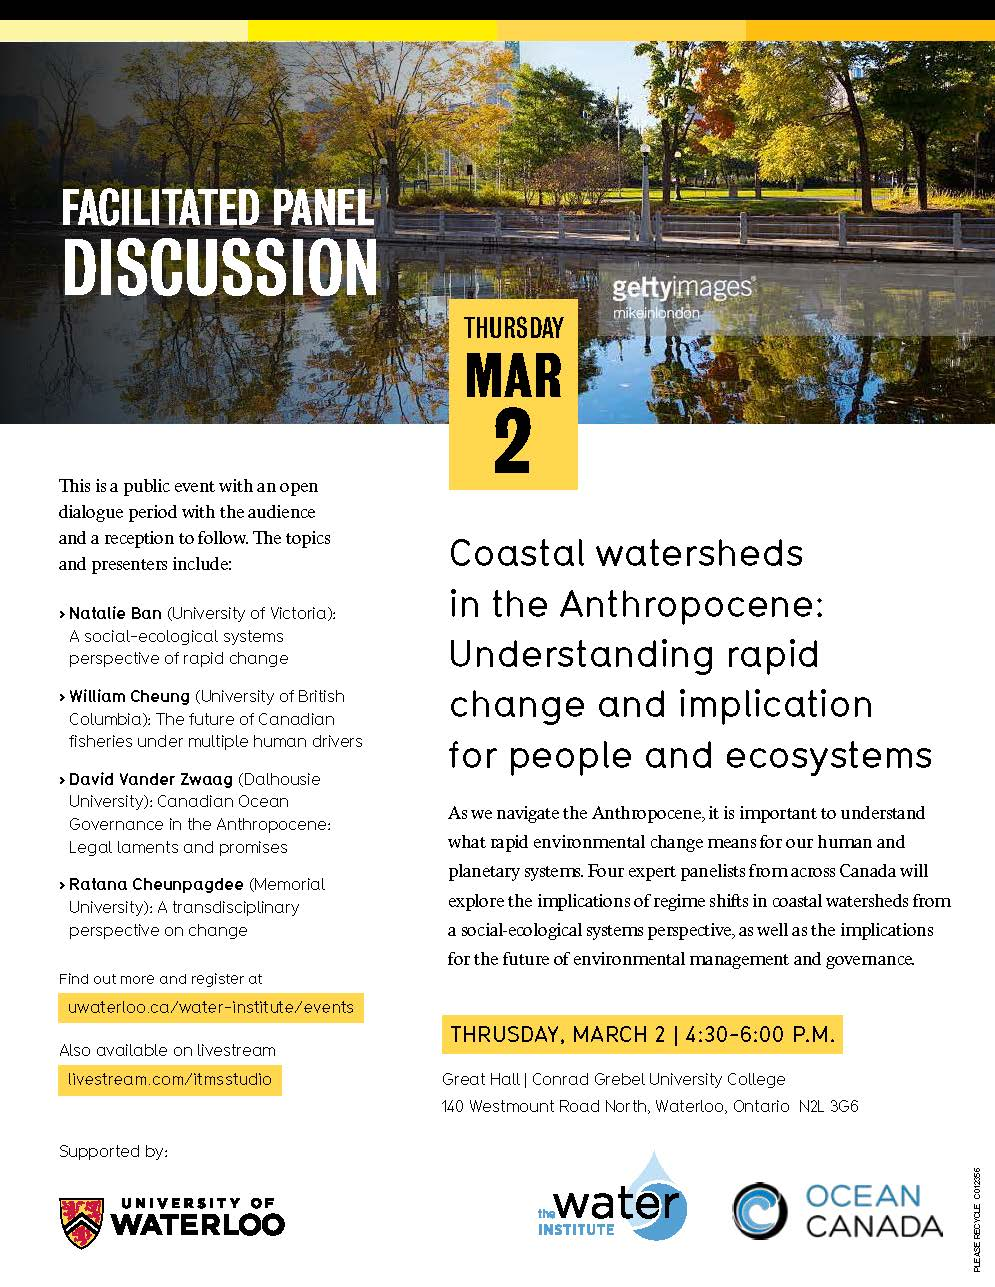 Coastal watershed event poster